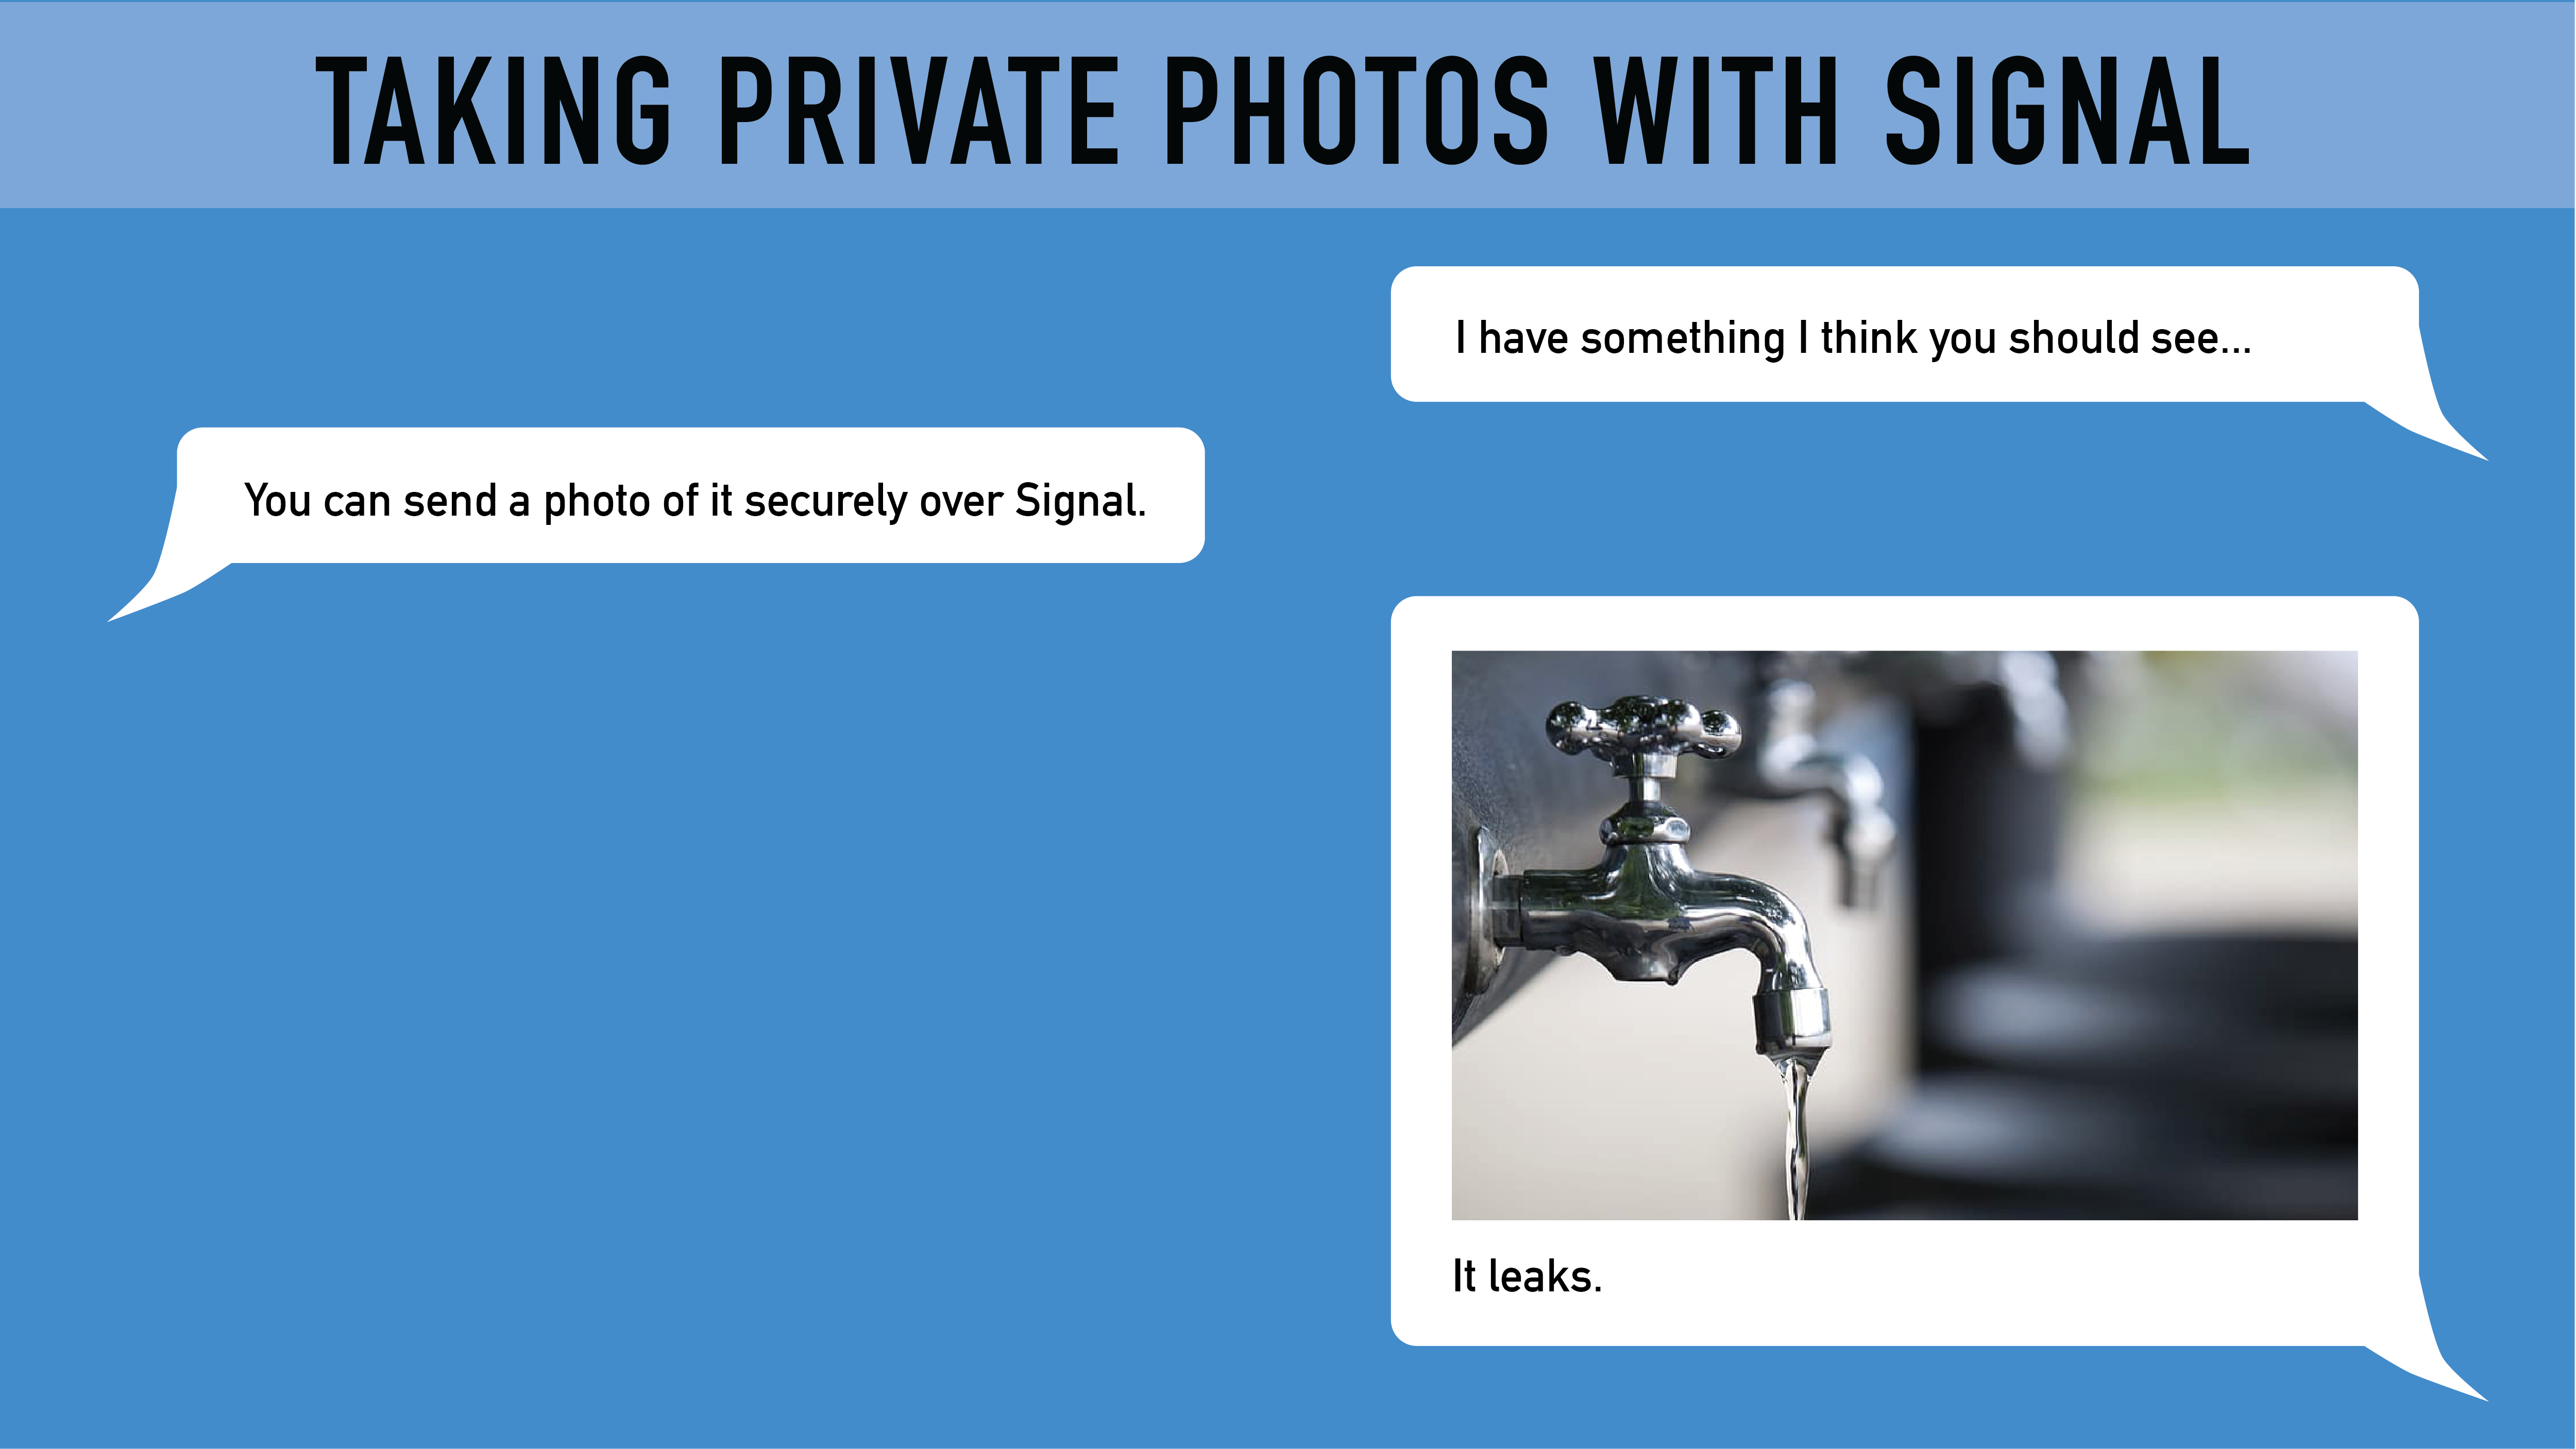 Header image of someone sharing a photo within Signal